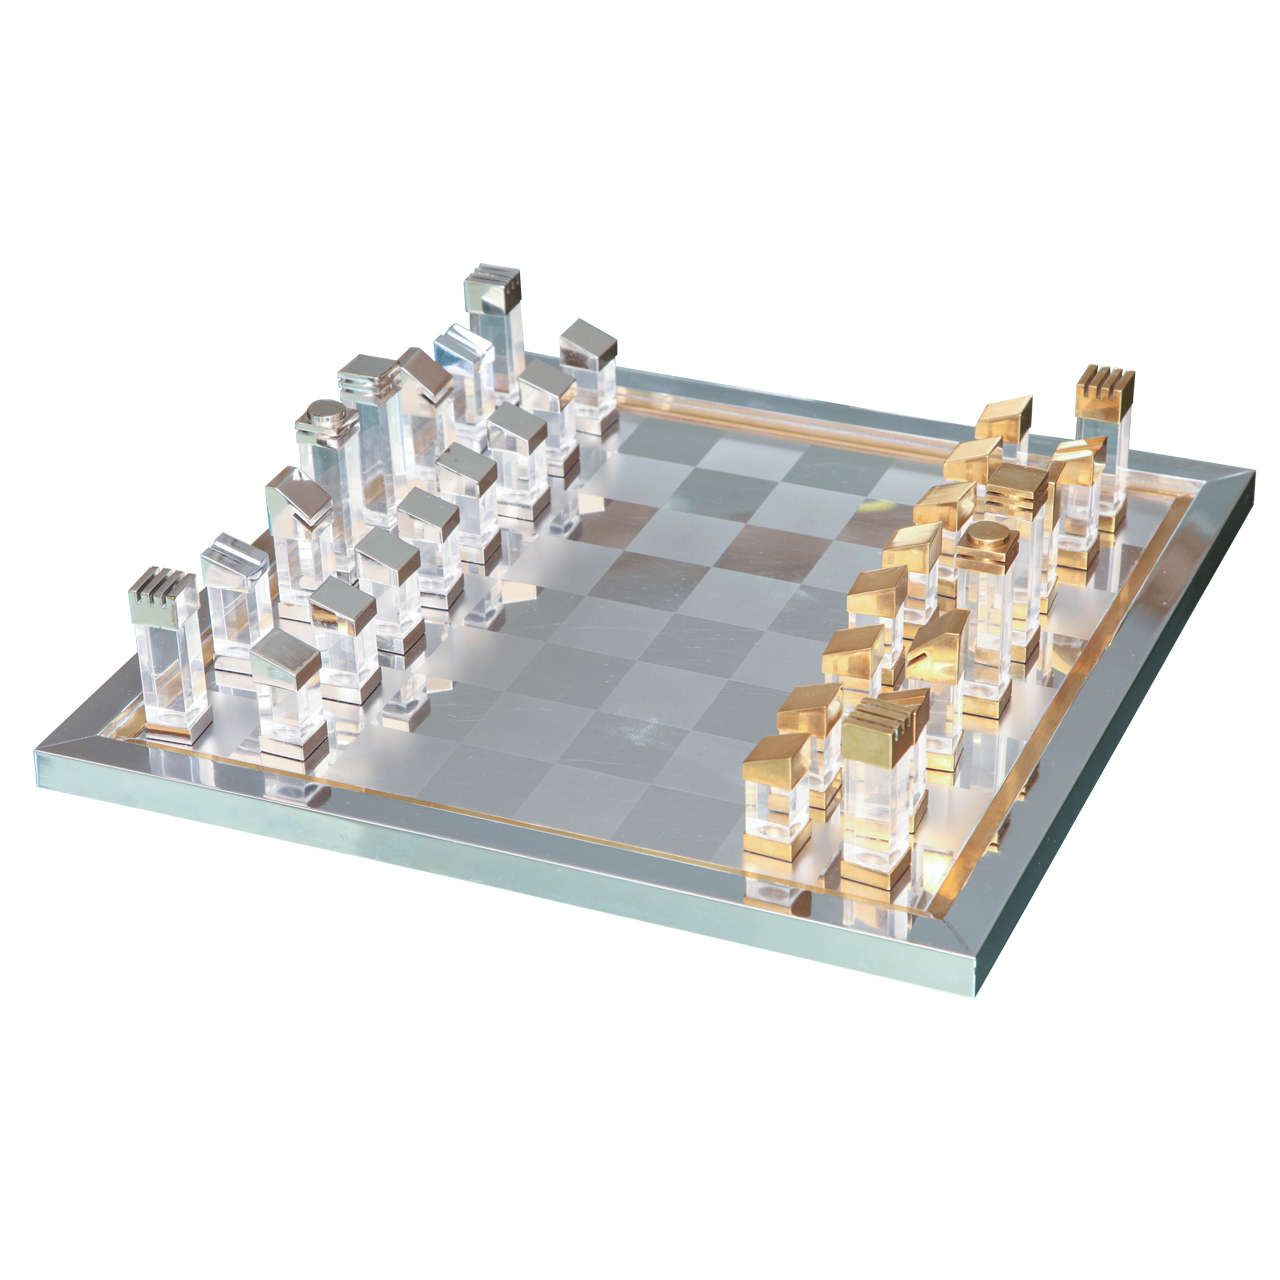 Steel Chess Pieces Romeo Rega Chess Set In Lucite Brass And Chrome D E S I